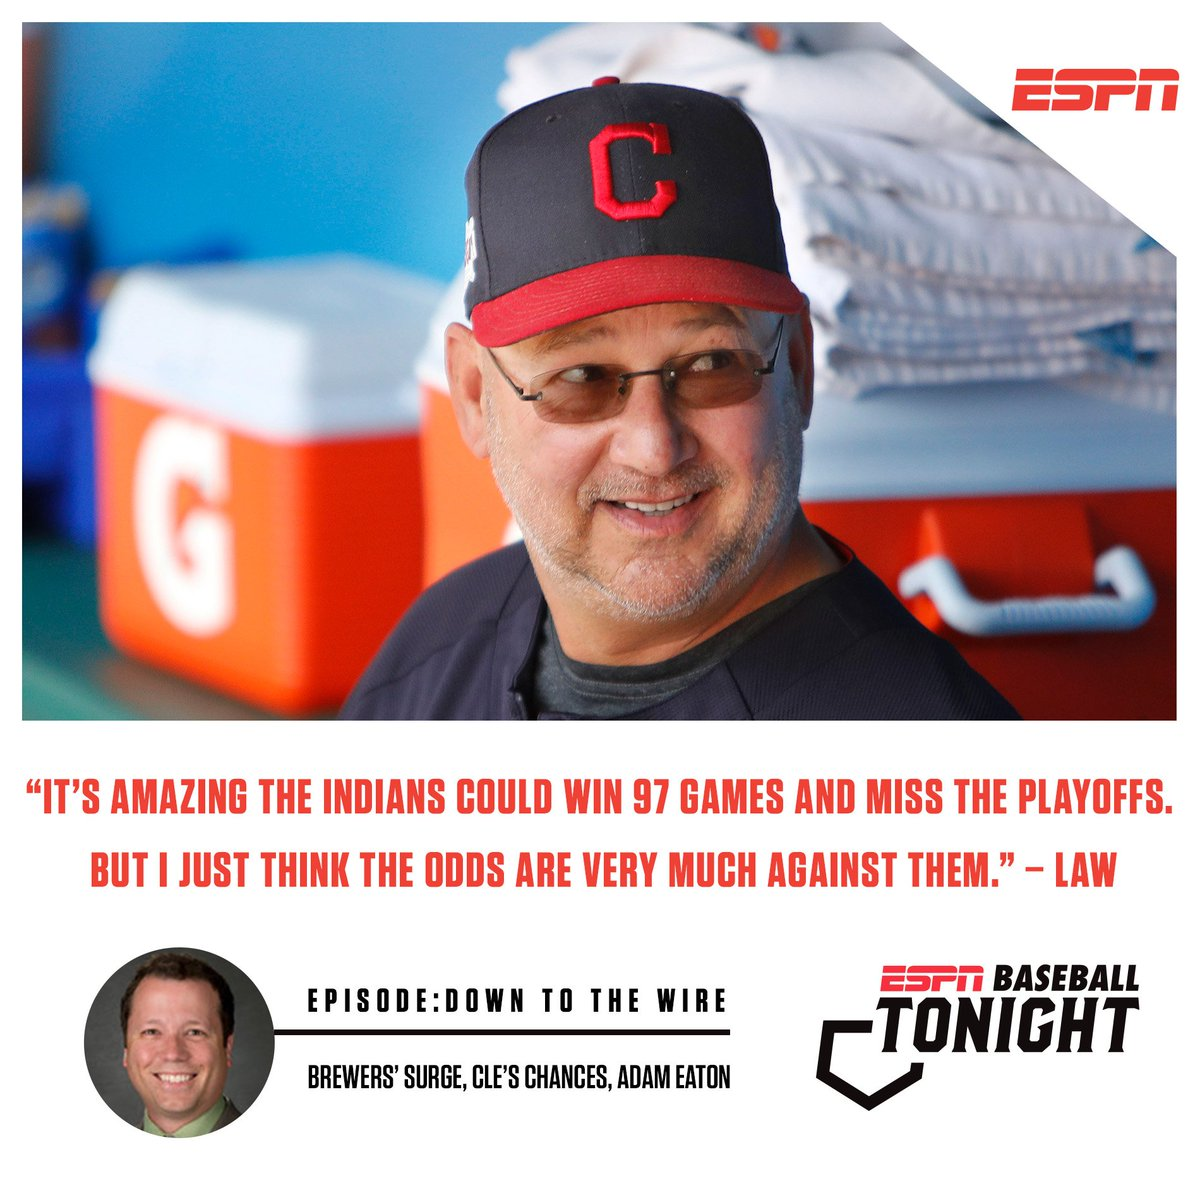 Another day, another Baseball Tonight podcast with @keithlaw and @MandyBell02 weighing in on the Indians playoff hopes. LISTEN: es.pn/2mV0PiV